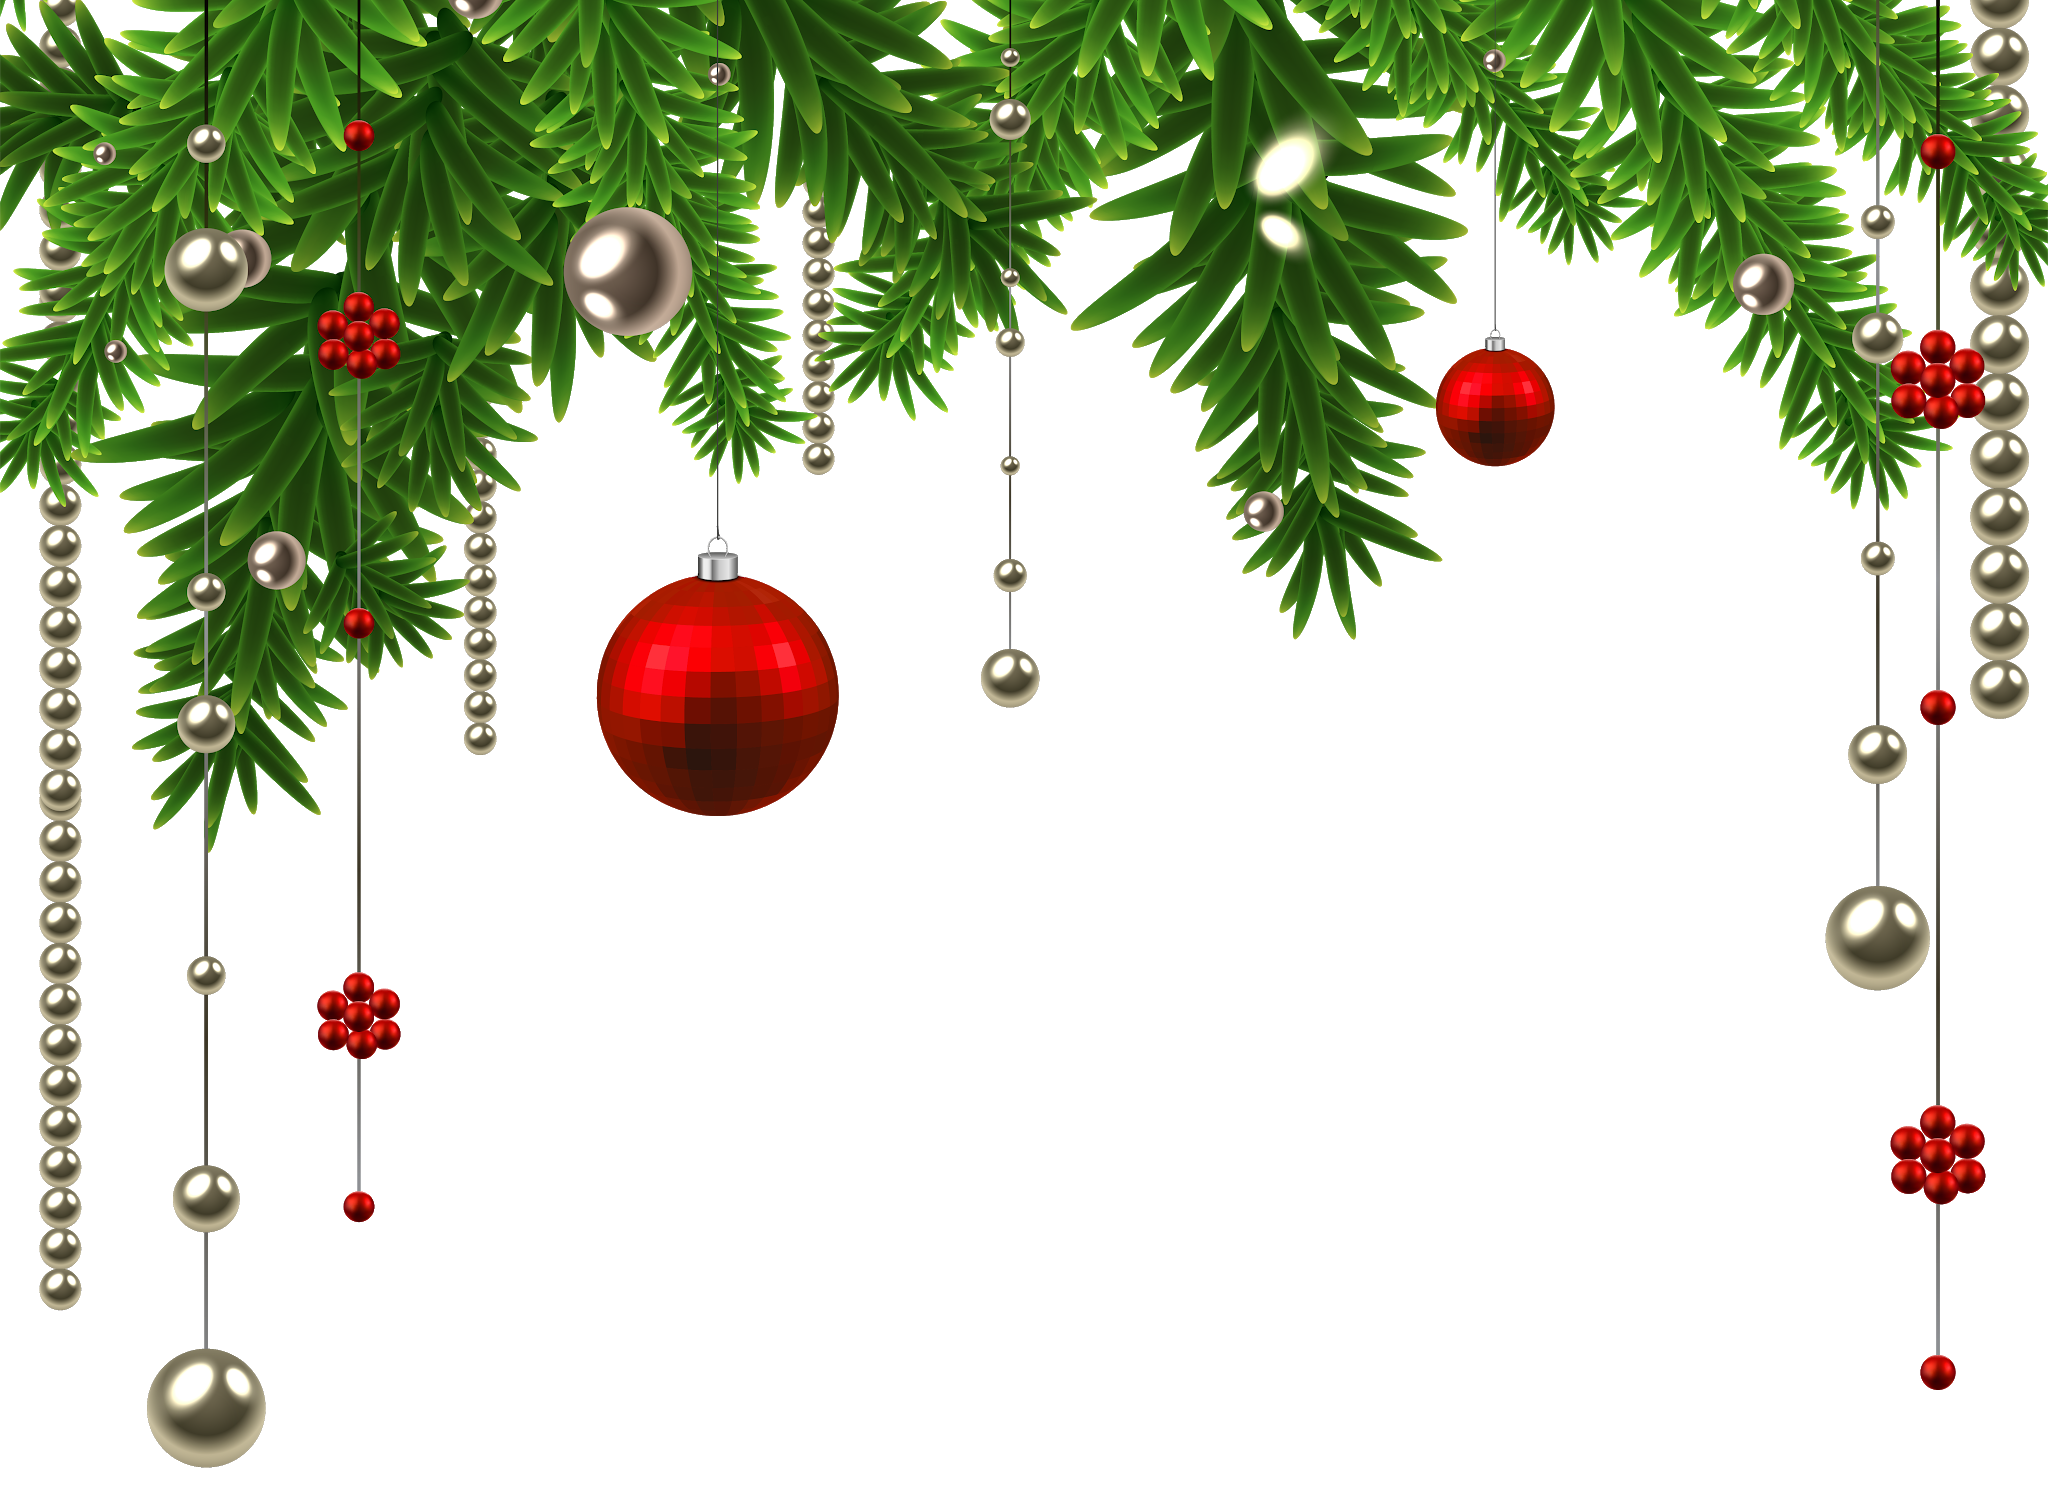 Its time to decorate for the holidays clipart image Pin by pngsector on Christmas PNG & Christmas Transparent ... image